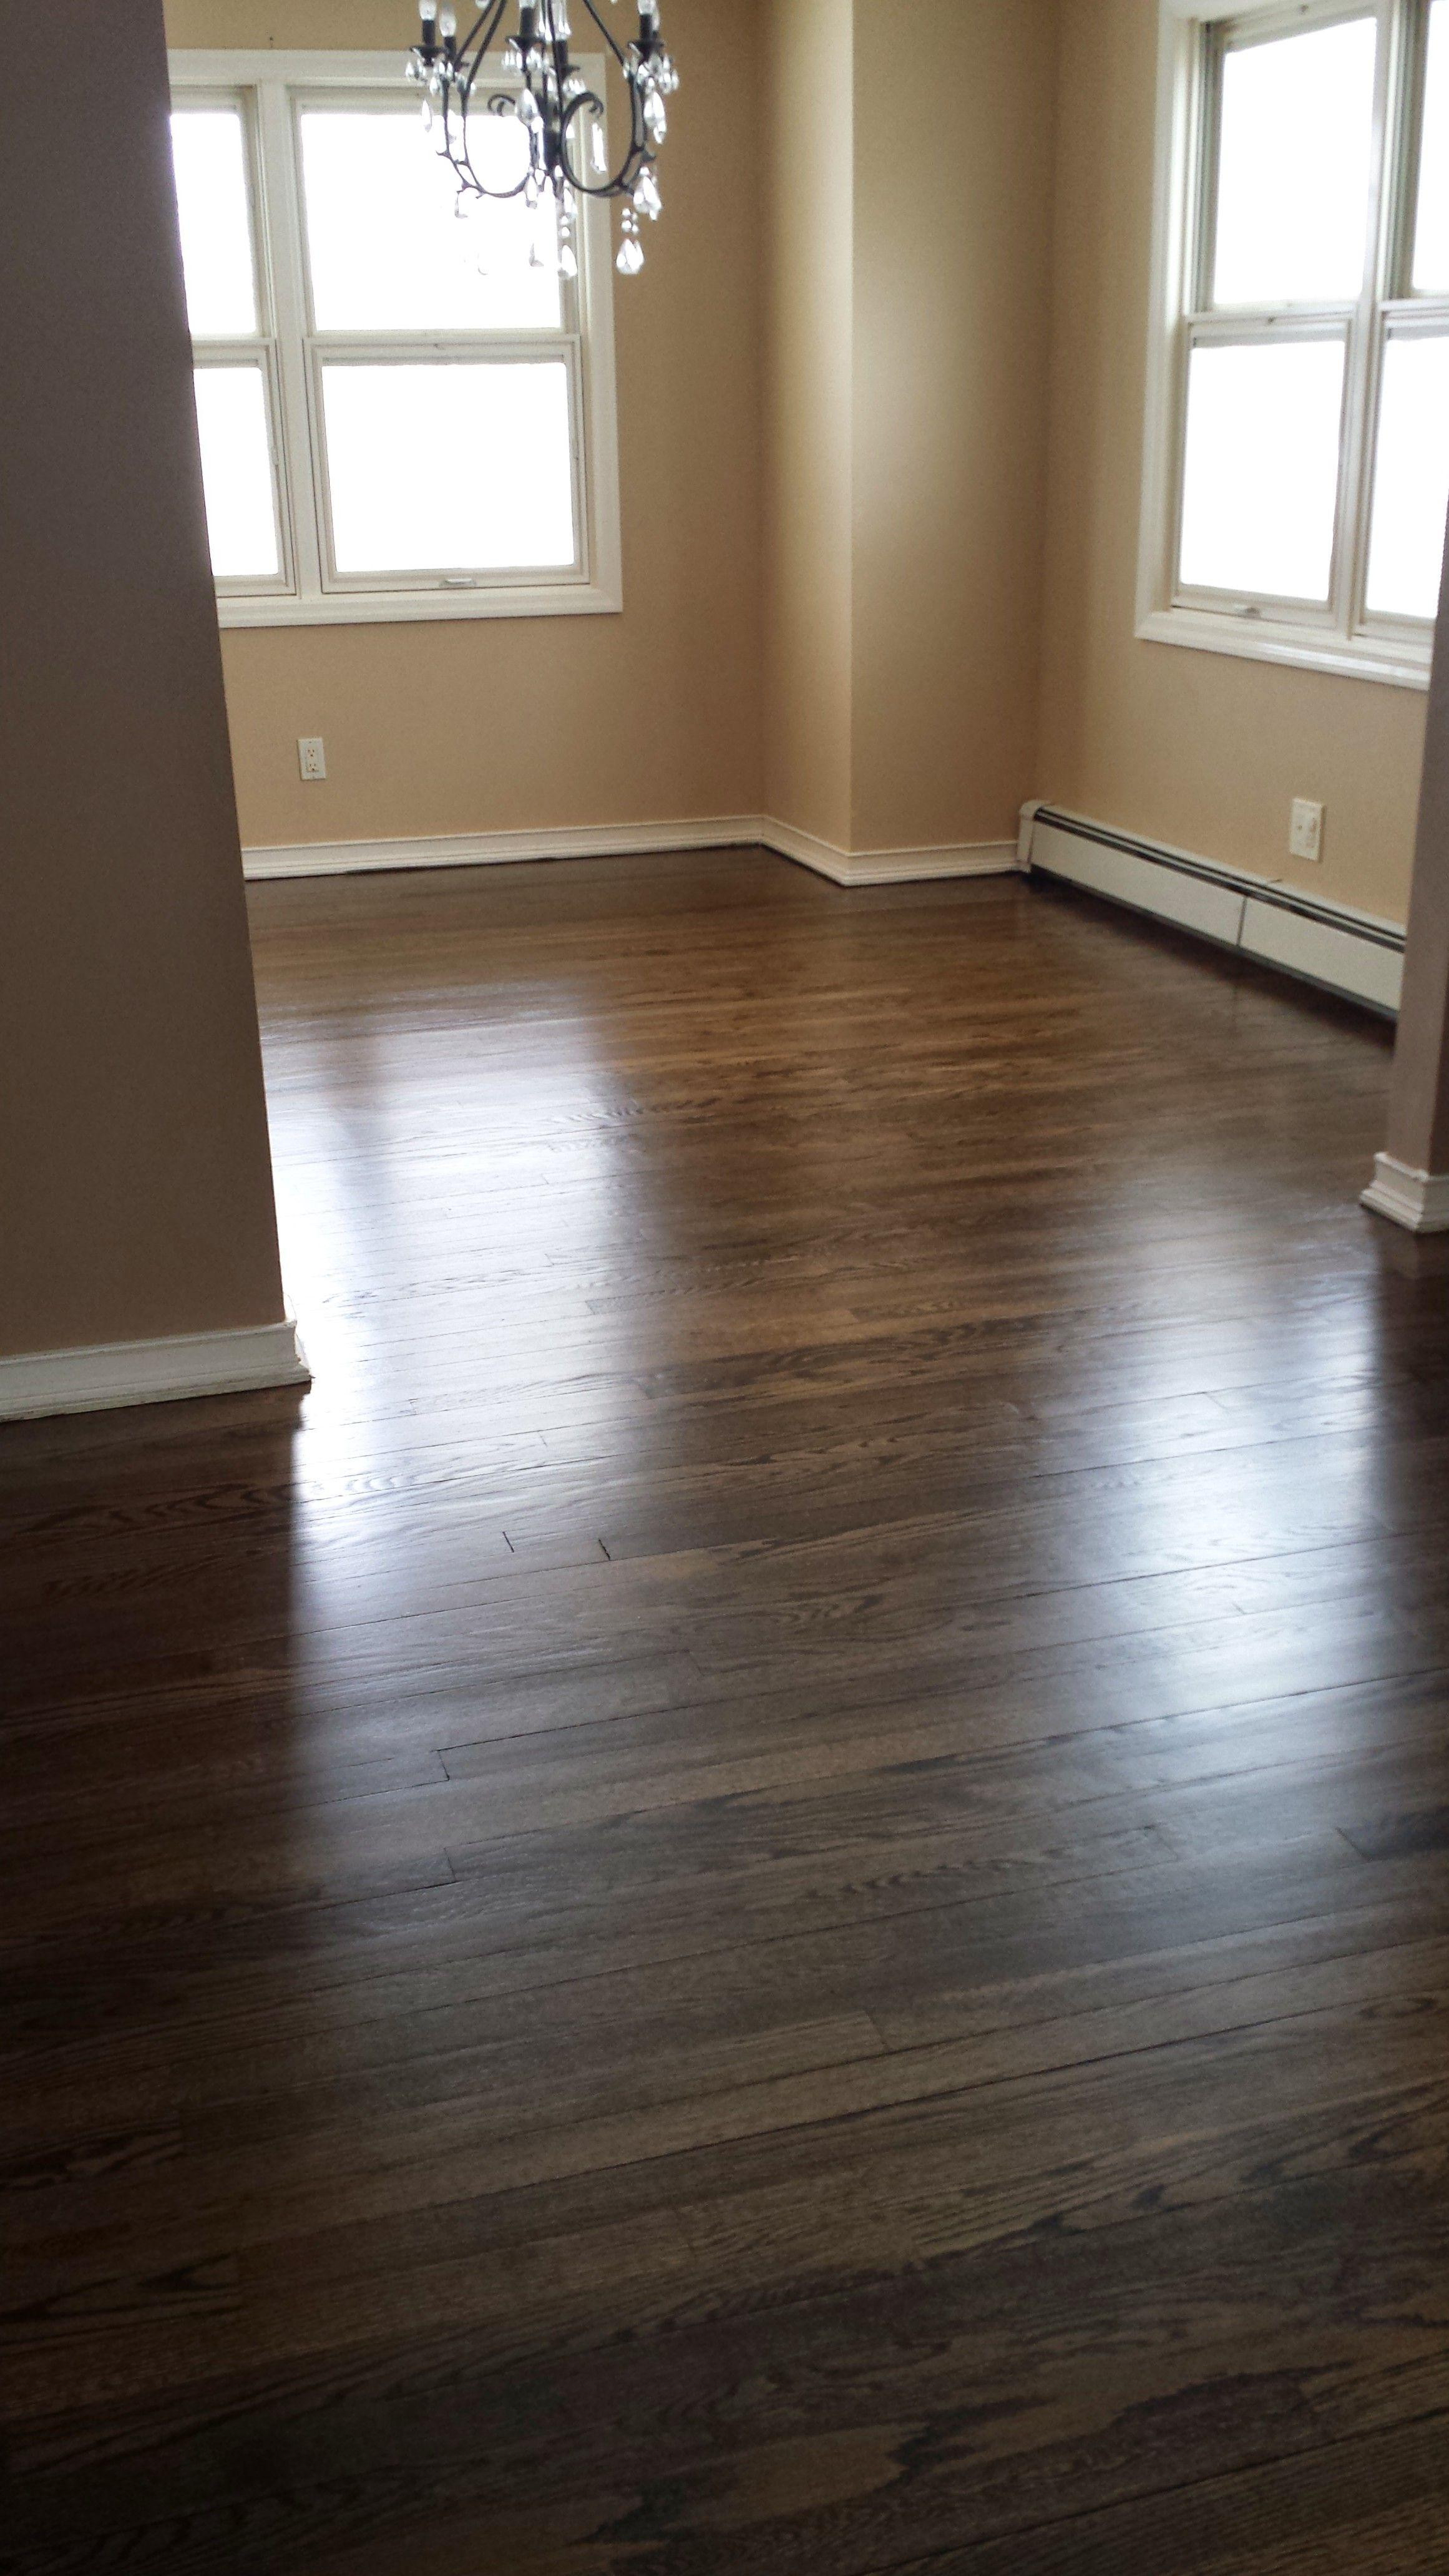 can i stain hardwood floors of lovely buffing hardwood floors without sanding inspiration in interior amusing refinishingod floors diy network refinish parquet without sanding buffing with pet stains refinishing hardwood